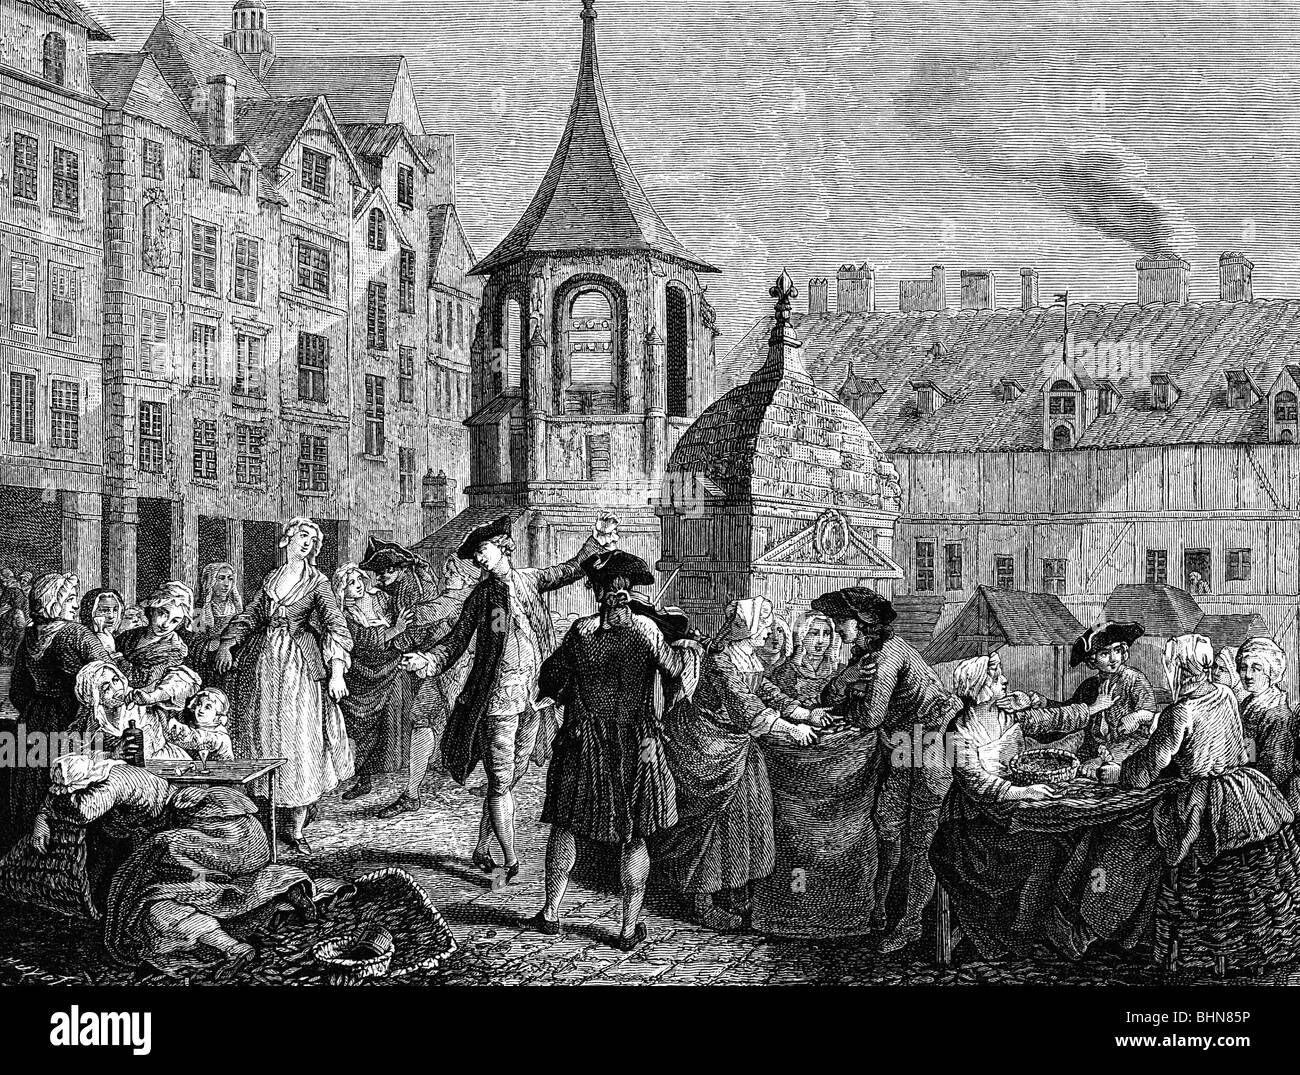 """trade, markets, """"Le marche des Innocents"""", Paris, wood engraving after copper engraving by Jeaurat, 18th century, Stock Photo"""